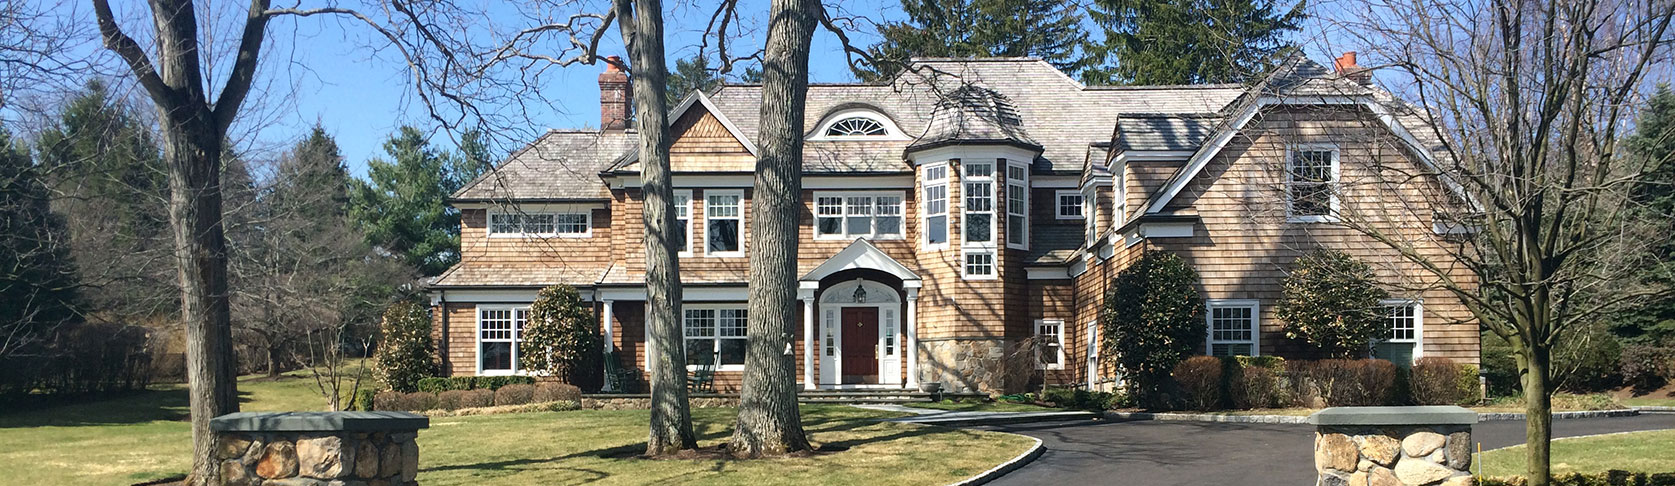 315 Elm Street, New Canaan, CT